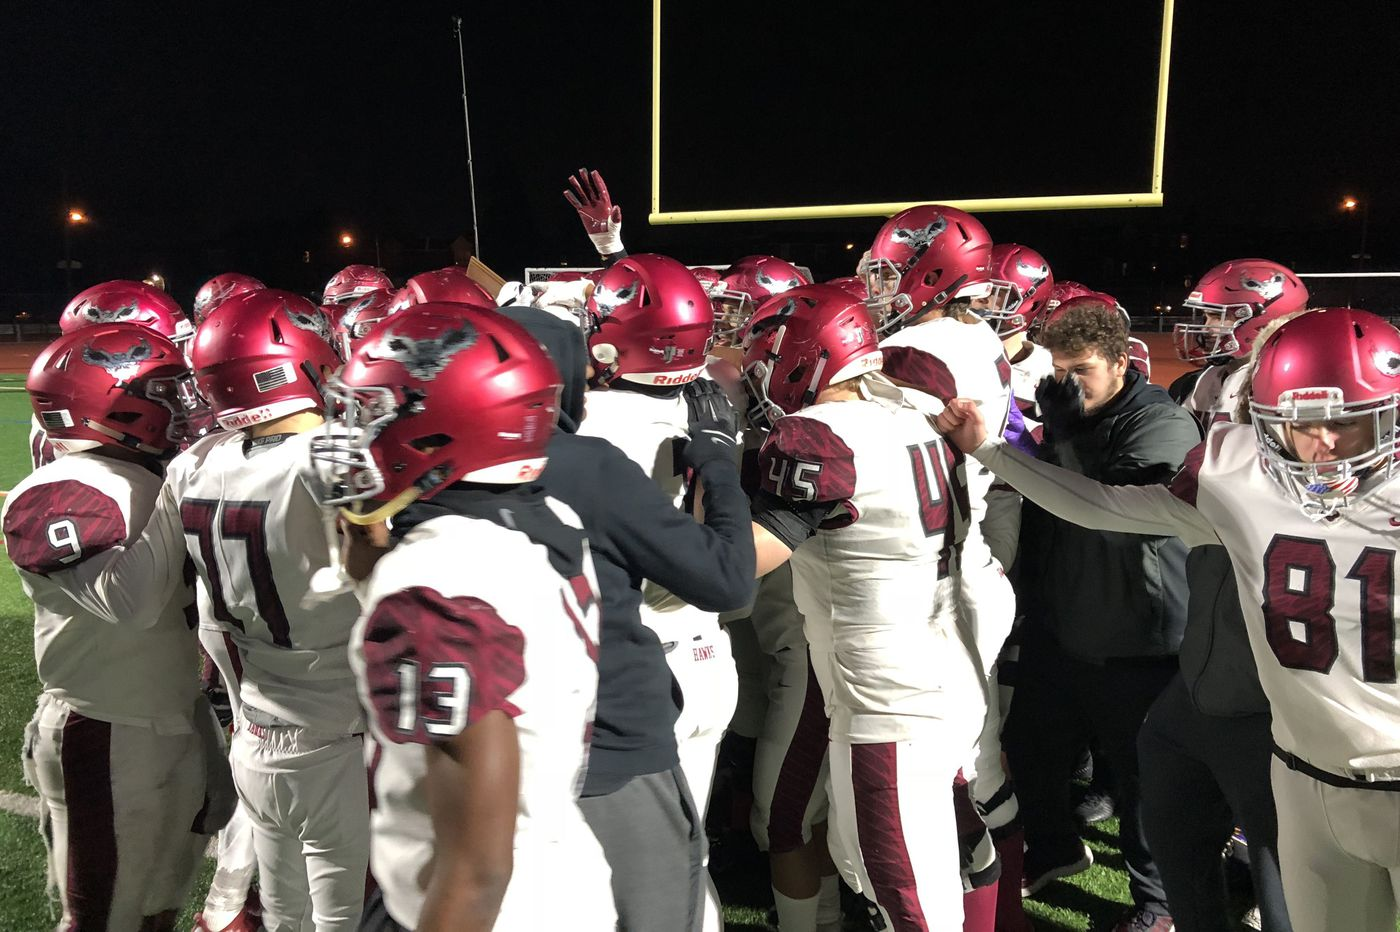 St. Joe's Prep retains PIAA District 12 Class 6A football crown with win over Northeast